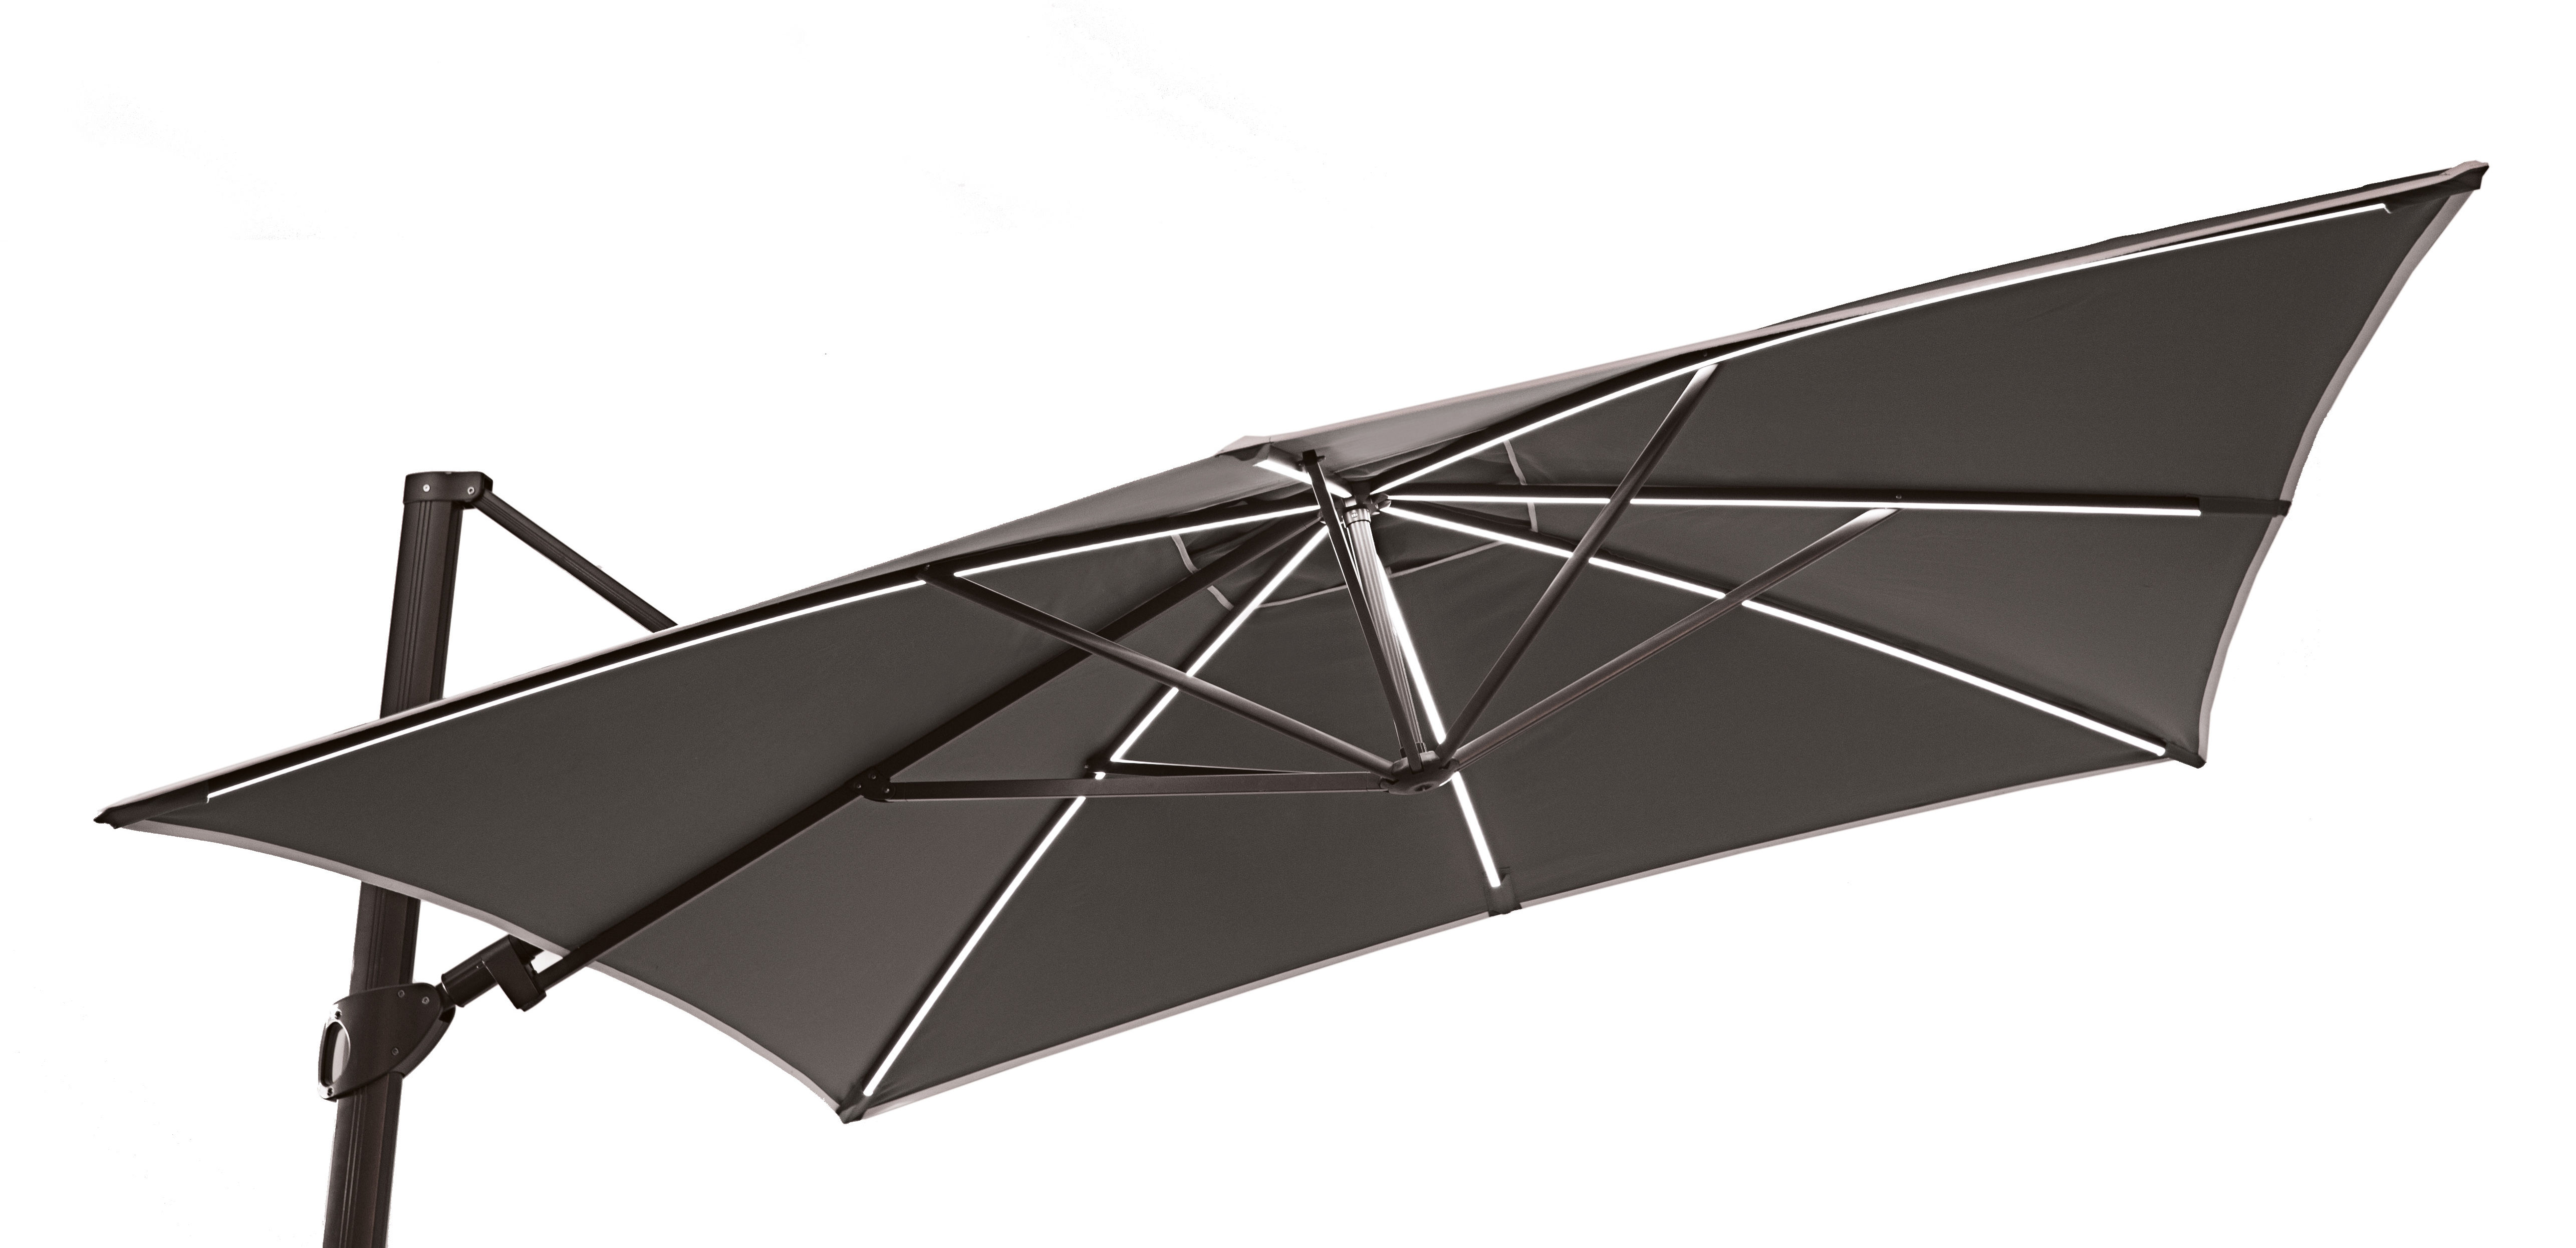 Easy shadow offset umbrella led 300 x 300 cm slate anthracite structure by vlaemynck - Vlaemynck parasol ...